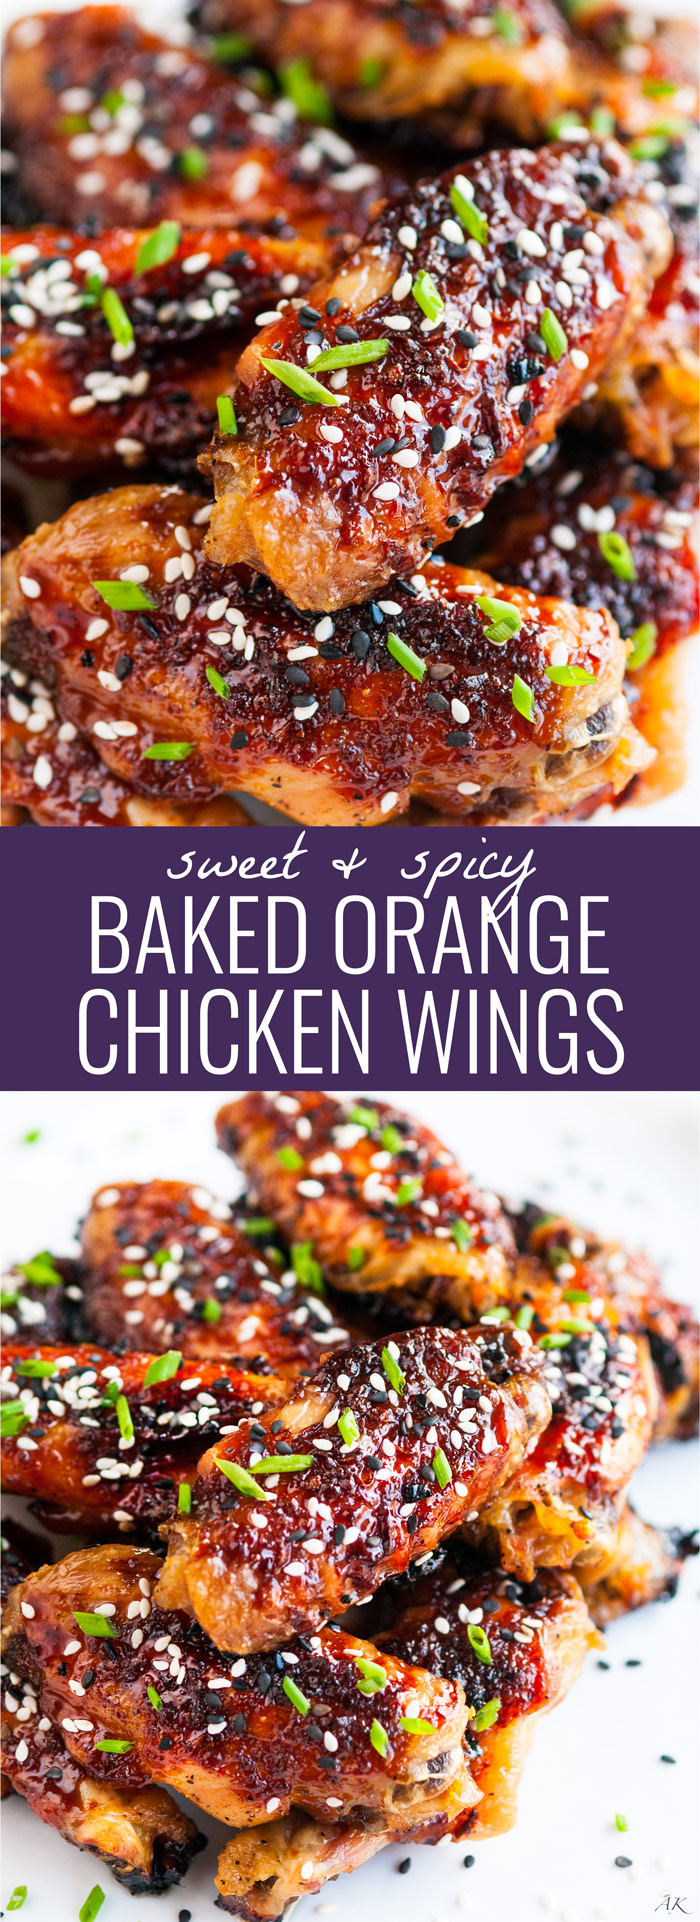 Sweet and Spicy Baked Orange Chicken Wings - Aberdeen's Kitchen